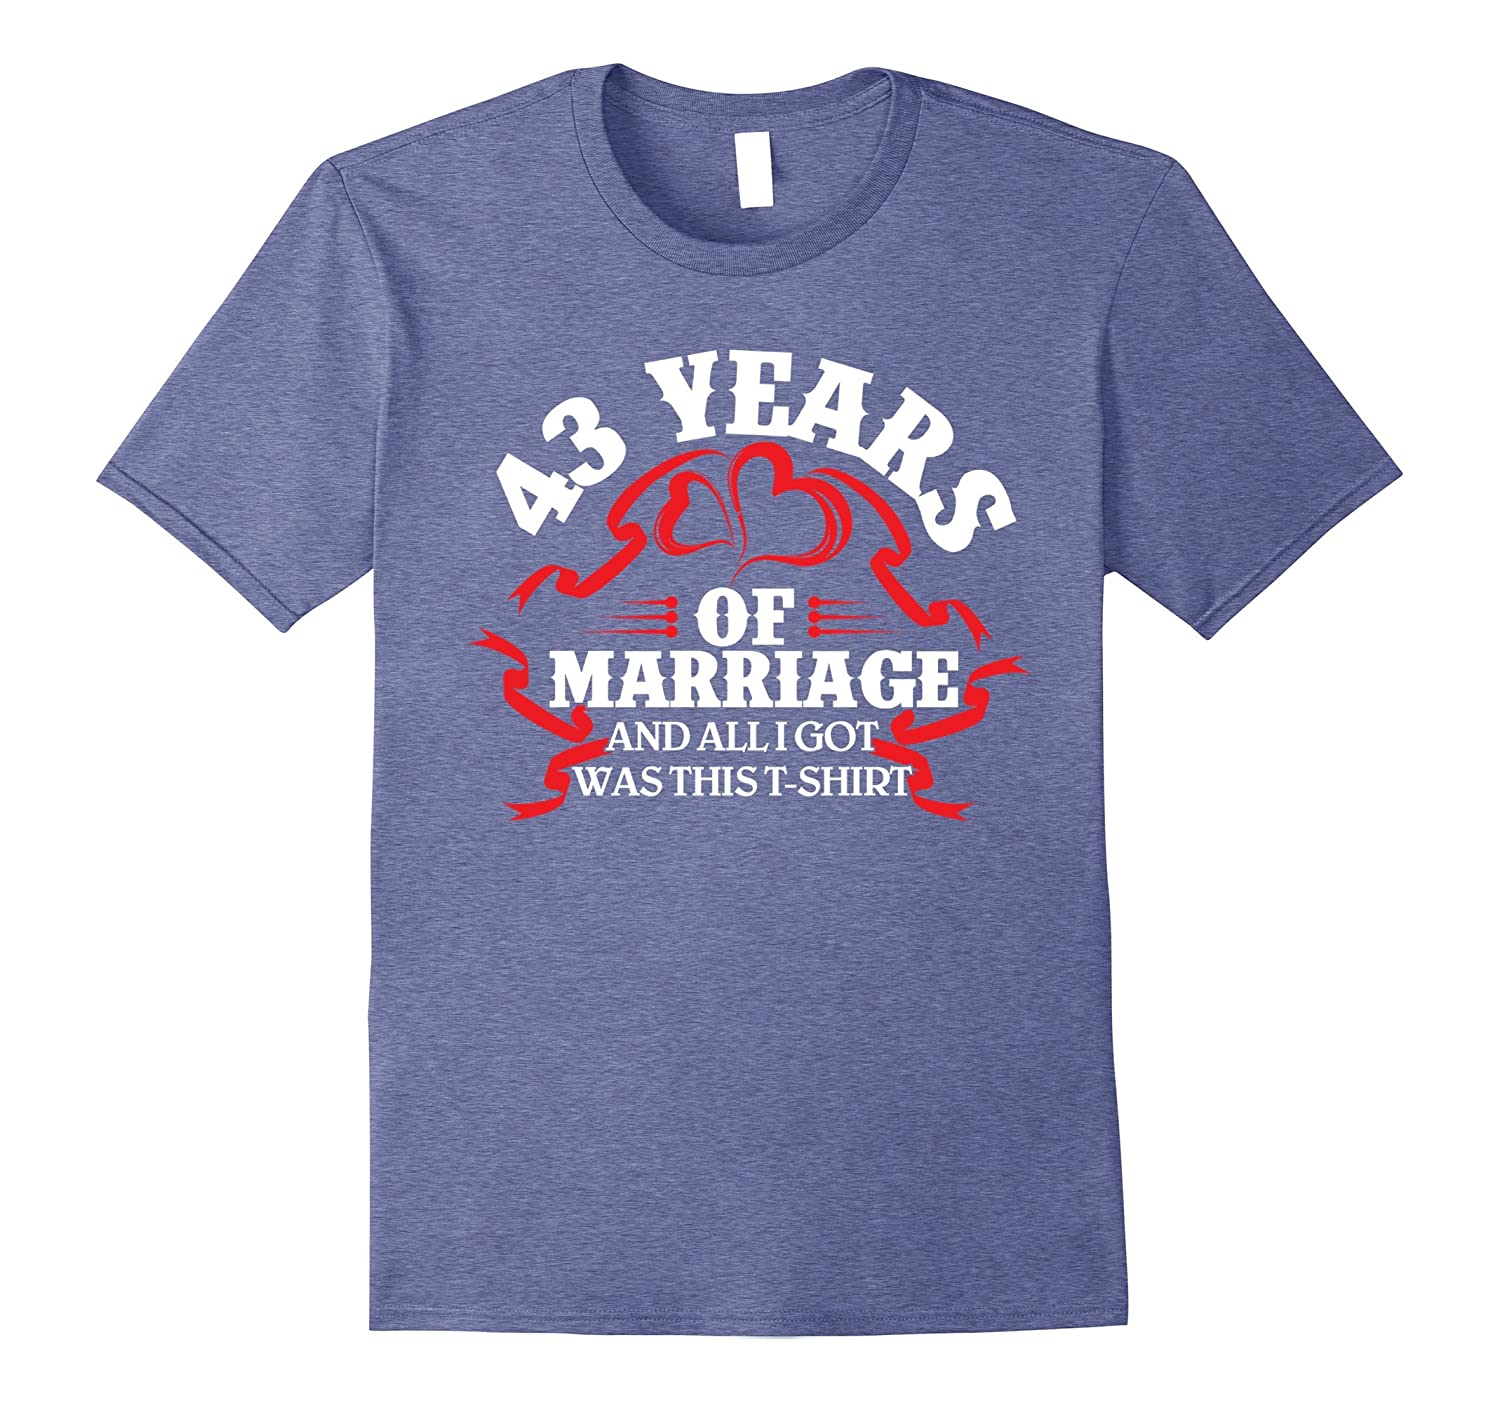 43rd Wedding Anniversary Gifts: Cool T-Shirt 43rd Wedding Anniversary Gifts For HerHim-PL